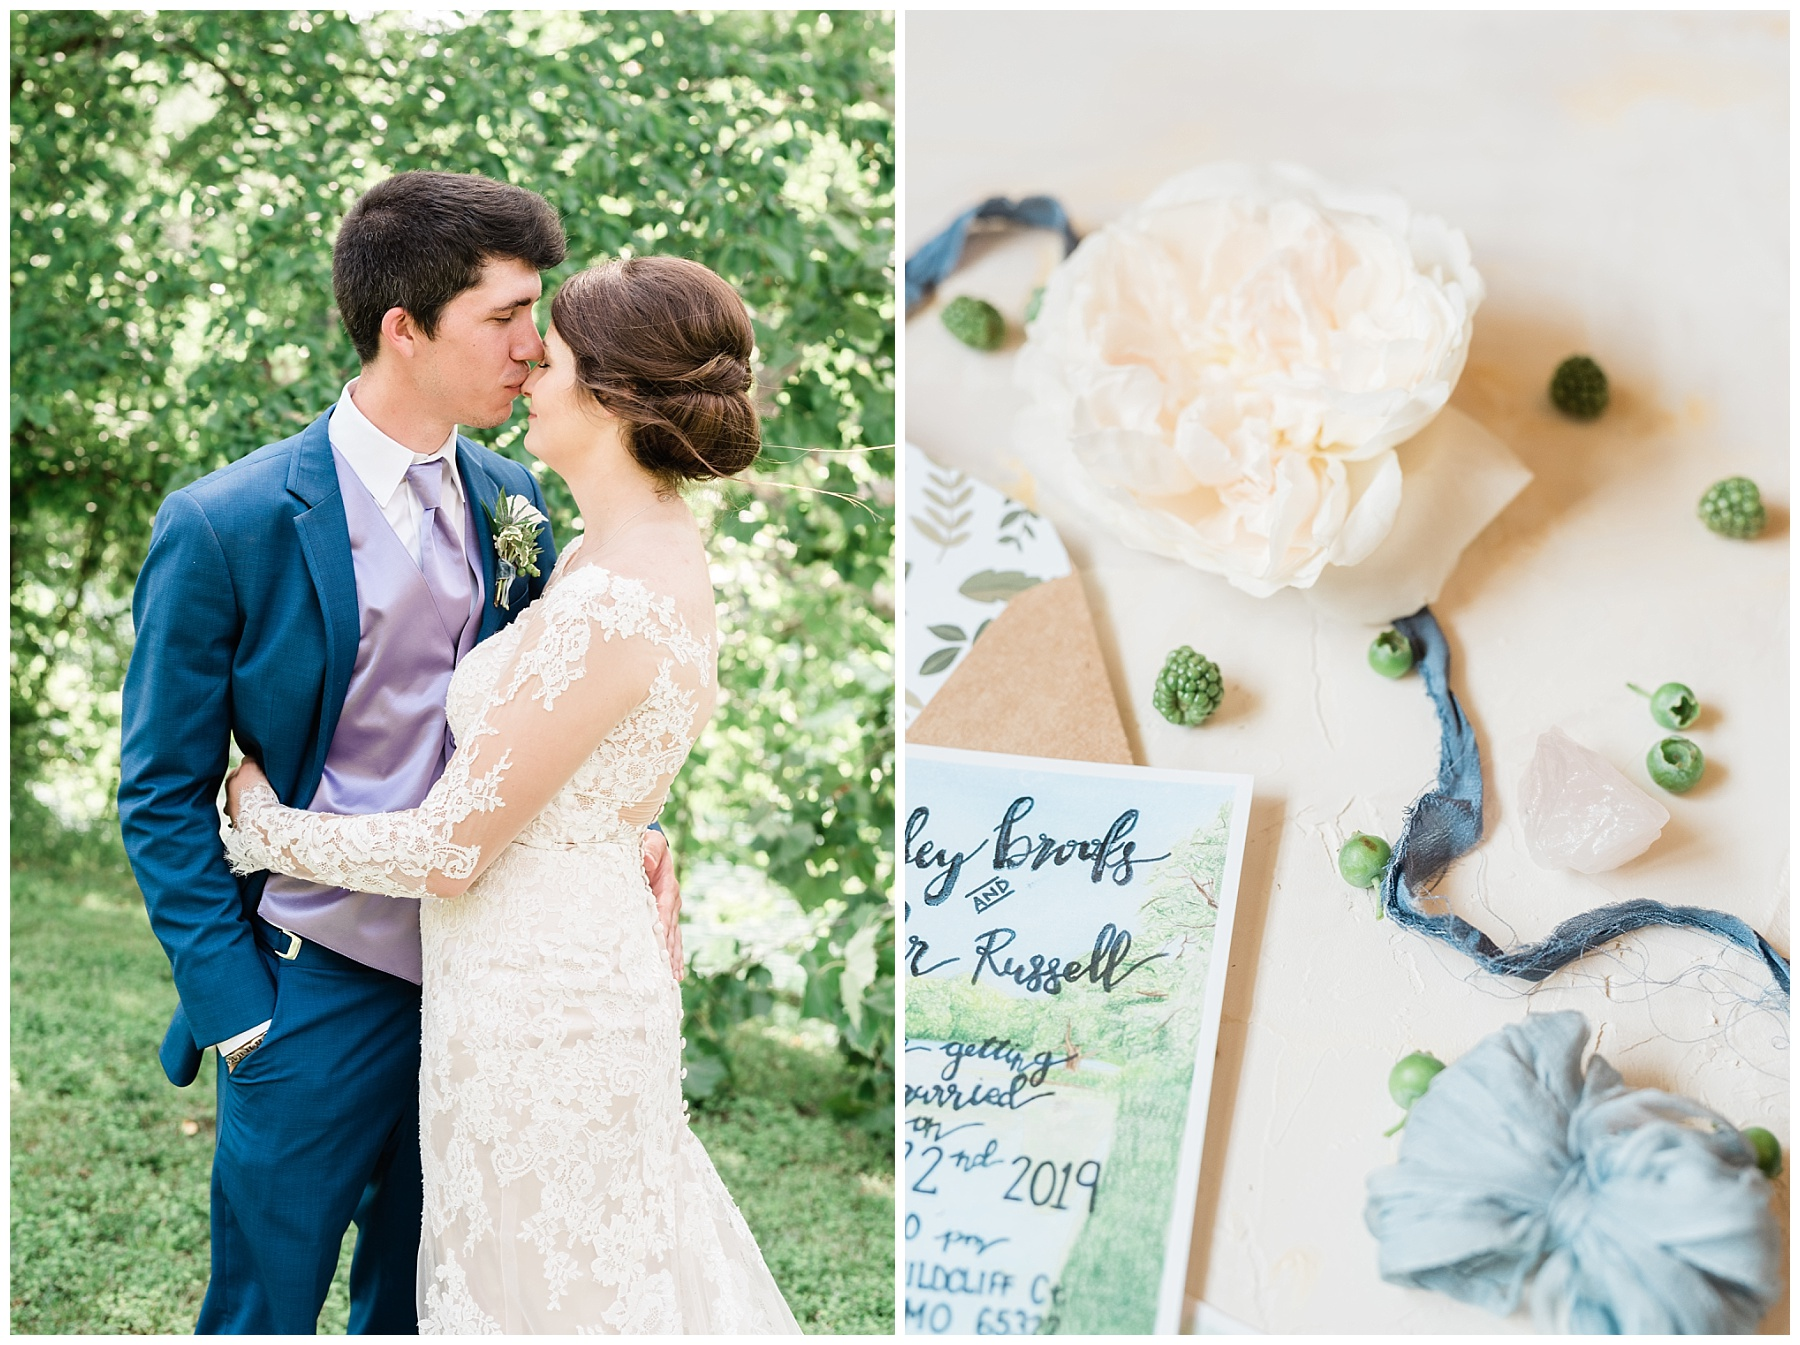 Intimate Mountain Hues Inspired Summer Wedding at Wildcliff Weddings and Events by Kelsi Kliethermes Photography Best Missouri and Maui Wedding Photographer_0068.jpg